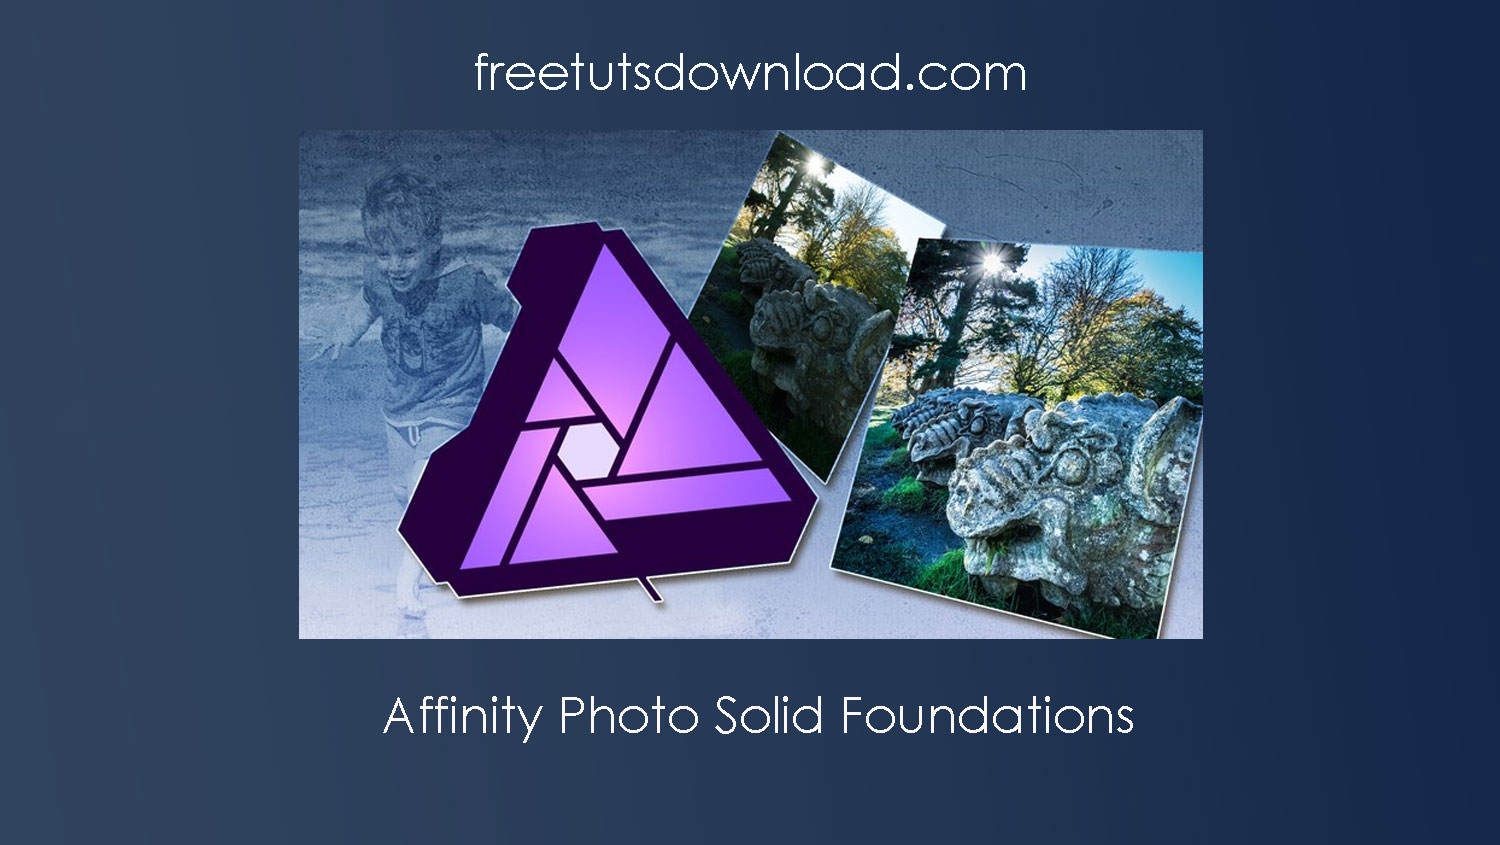 Affinity Photo Solid Foundations Free Download